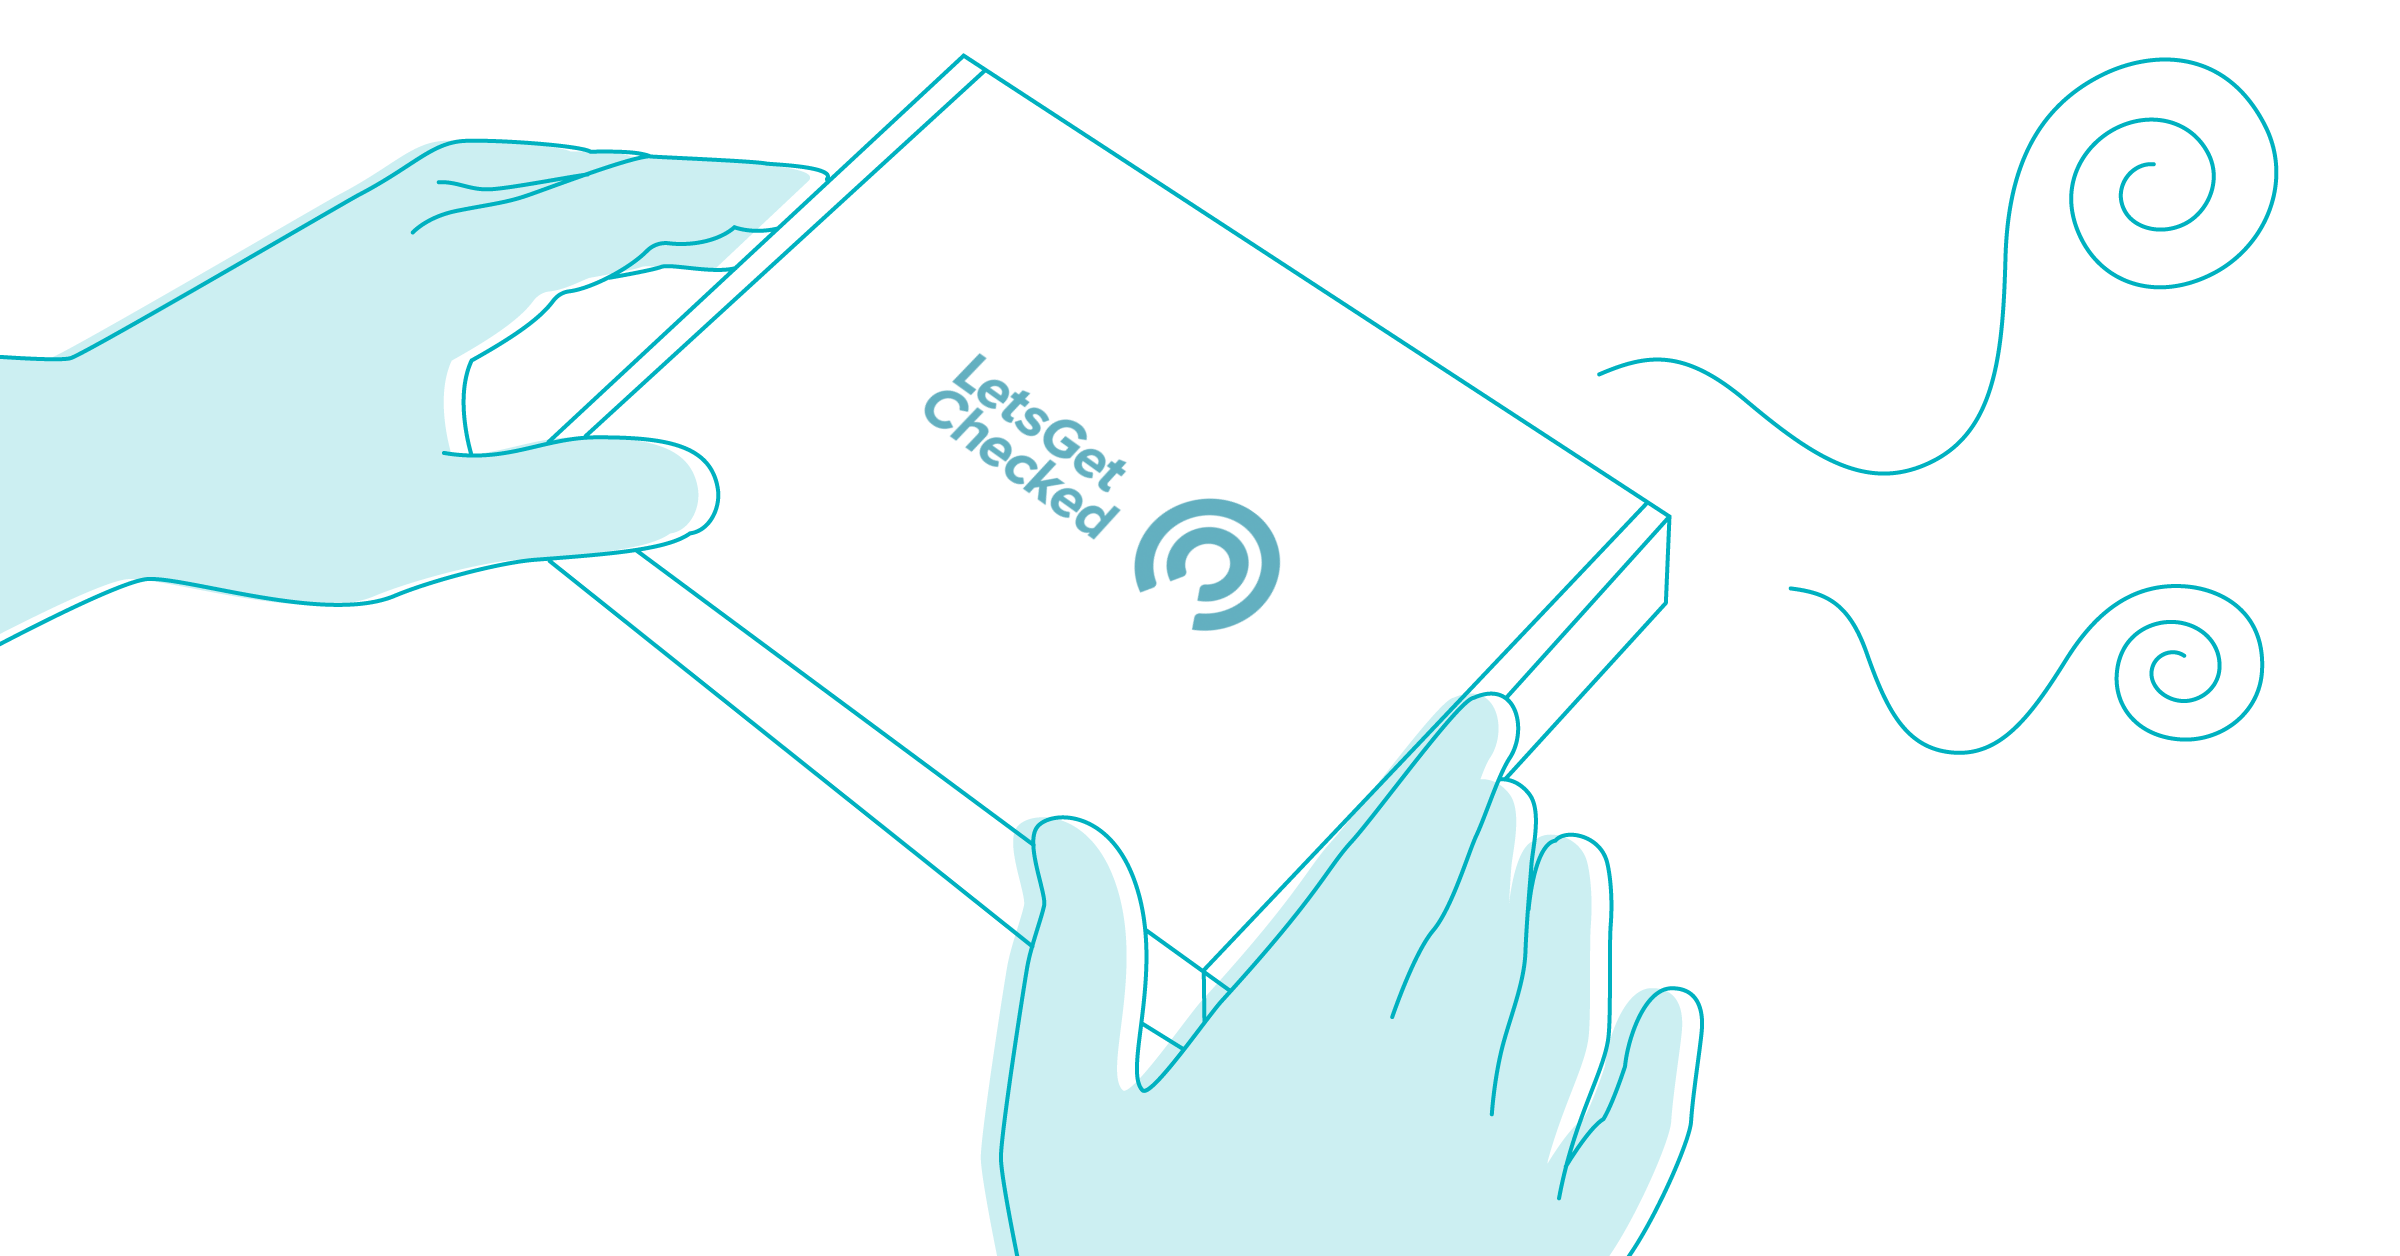 Here is the LetsGetChecked step by step guide to taking your personal at home test kit.